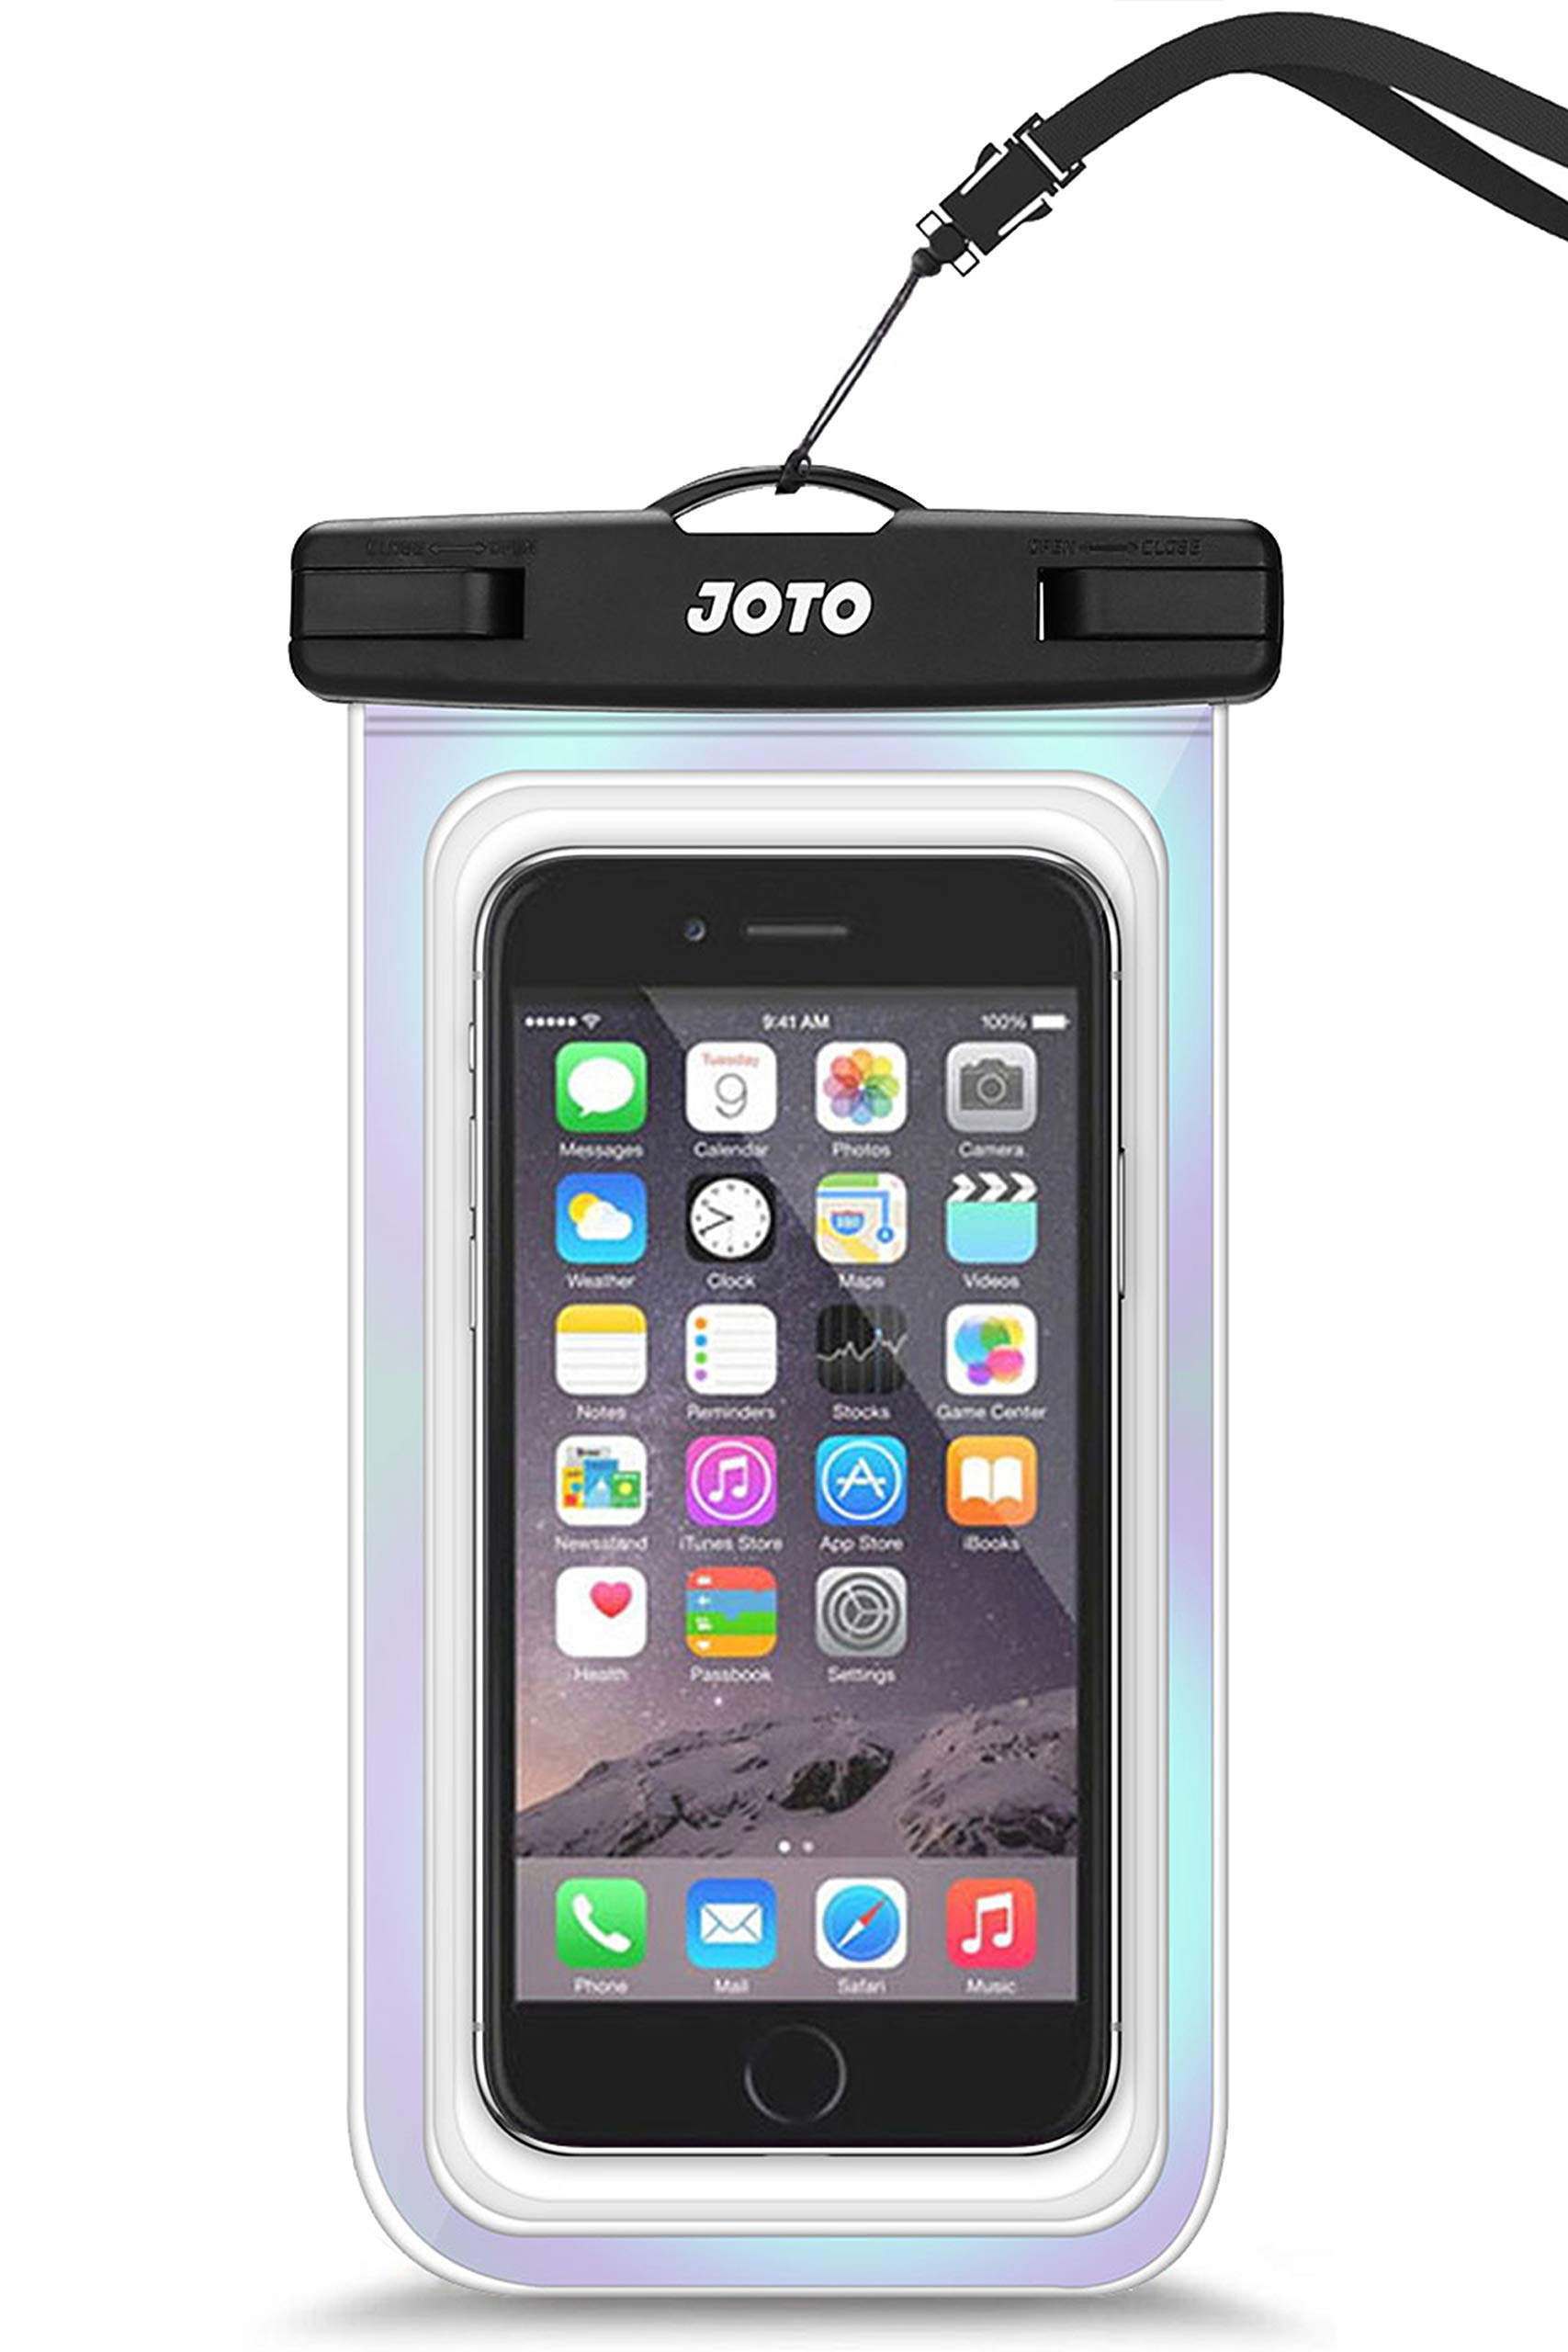 """JOTO Universal Waterproof Pouch Cellphone Dry Bag Case for iPhone 11 Pro Max Xs Max XR X 8 7 6S Plus SE 2020, Galaxy S20 Ultra S20+ S10 Plus S10e S9 Plus S8/Note 10+ 9, Pixel 4 XL up to 6.9"""" -Sparkle"""